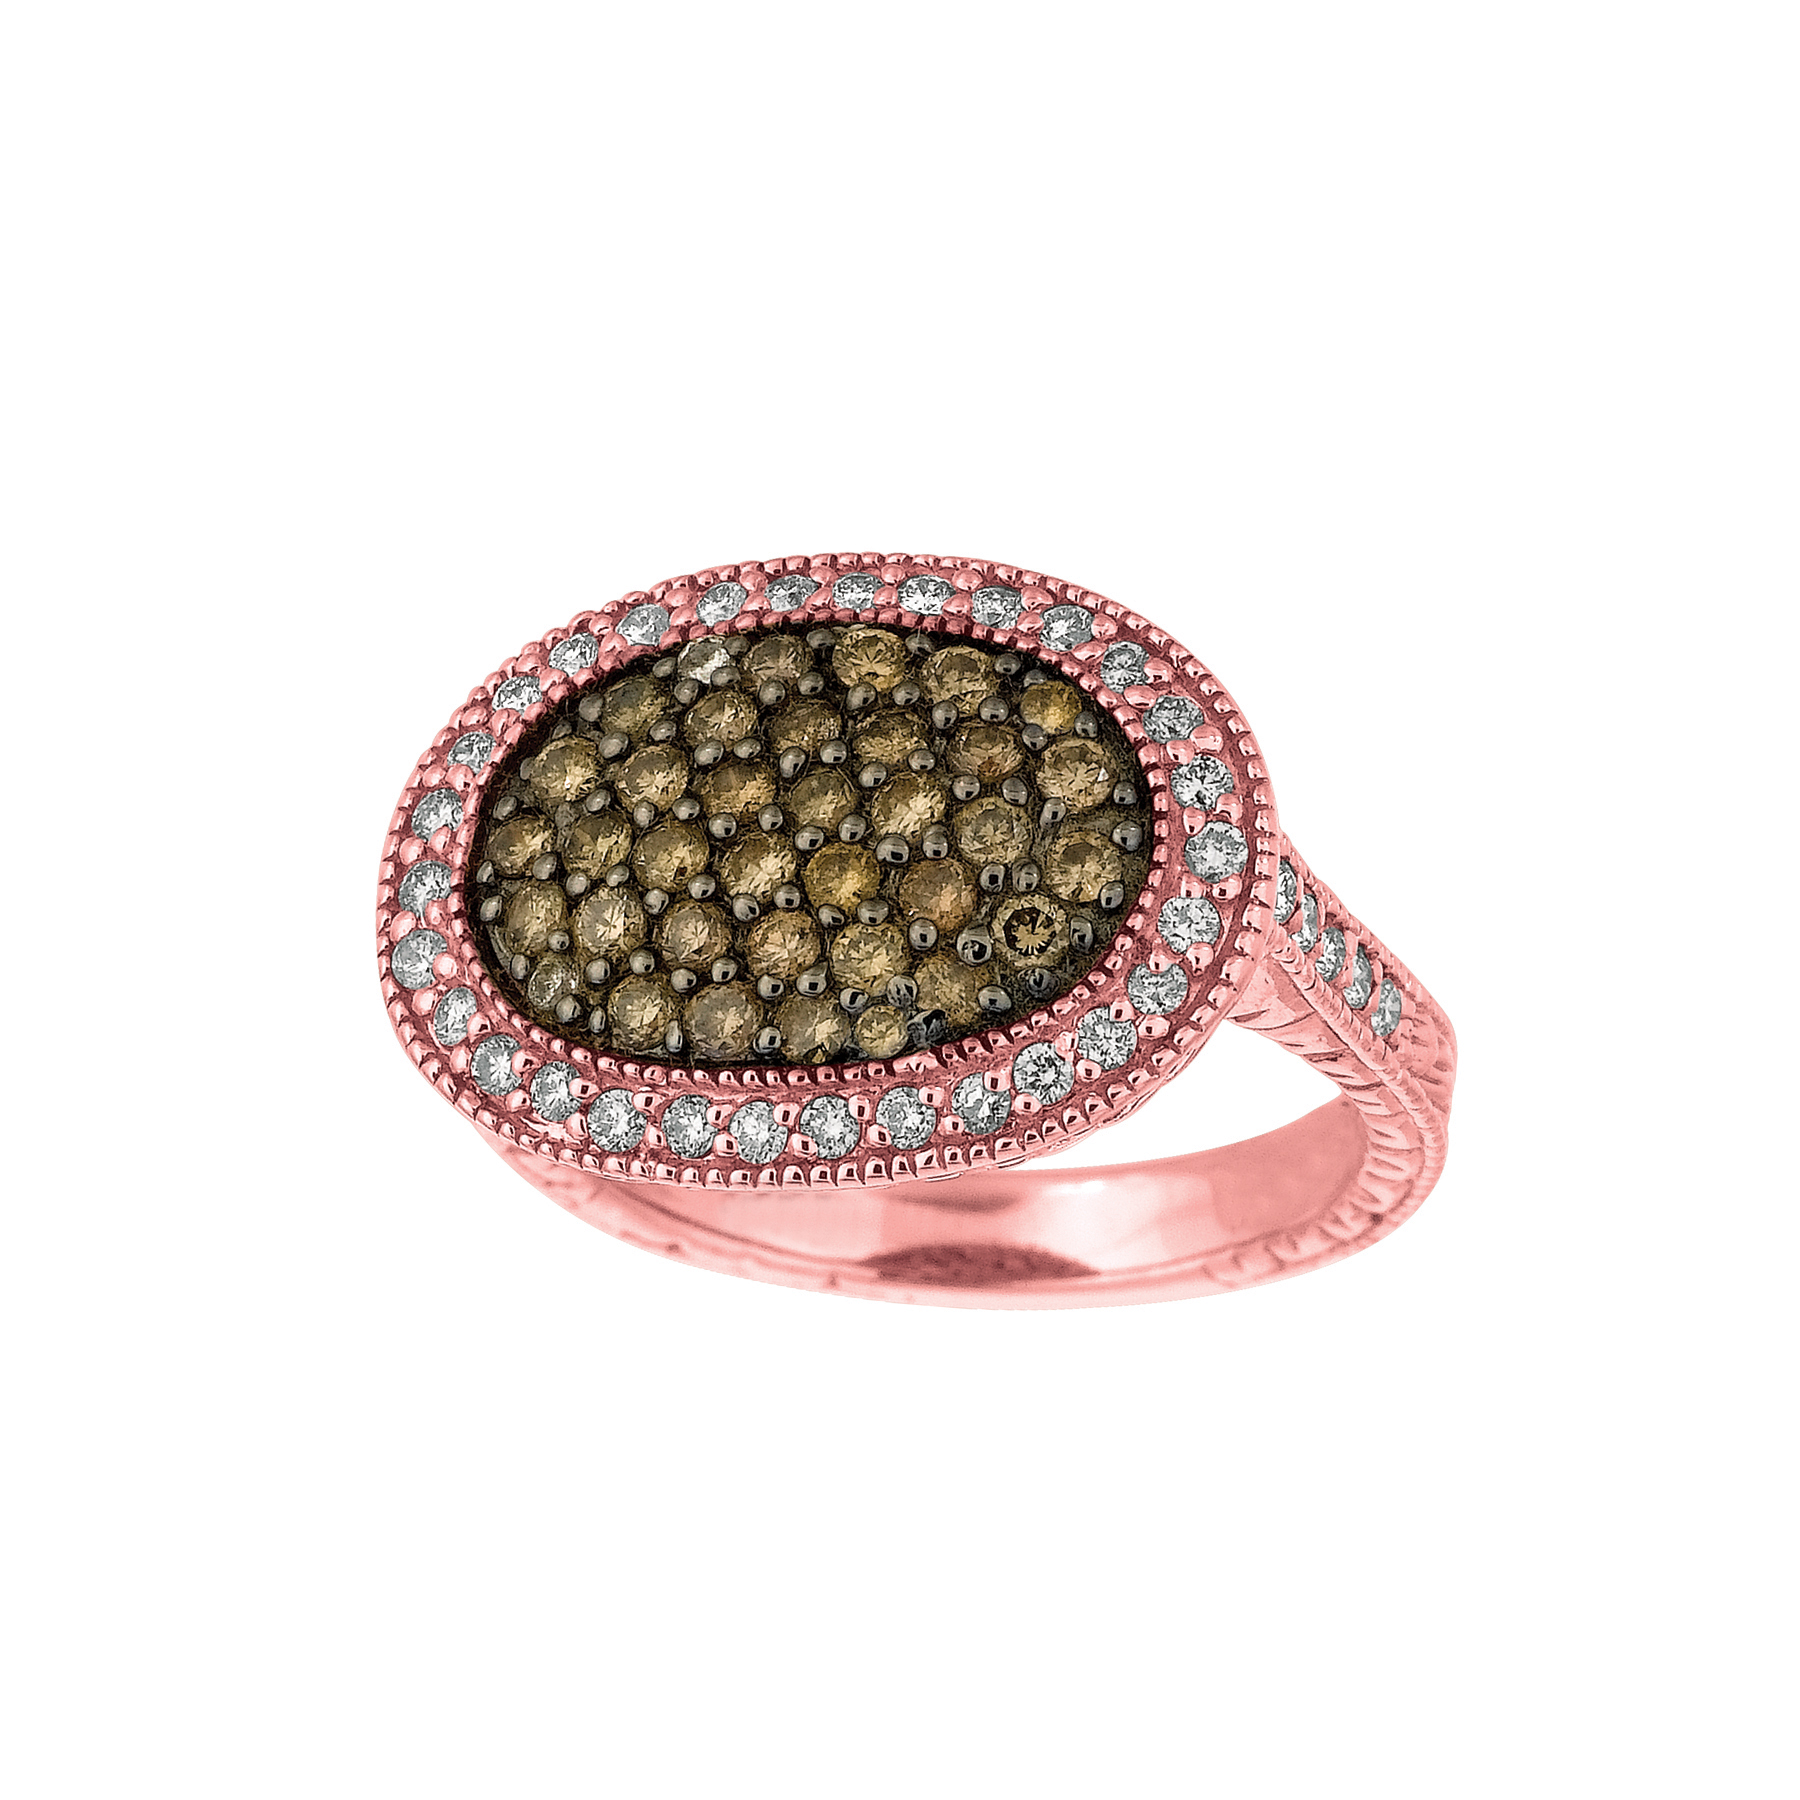 1.25 CT Champagne & white diamond oval shape ring Set In 14K pink gold IDJR6648P